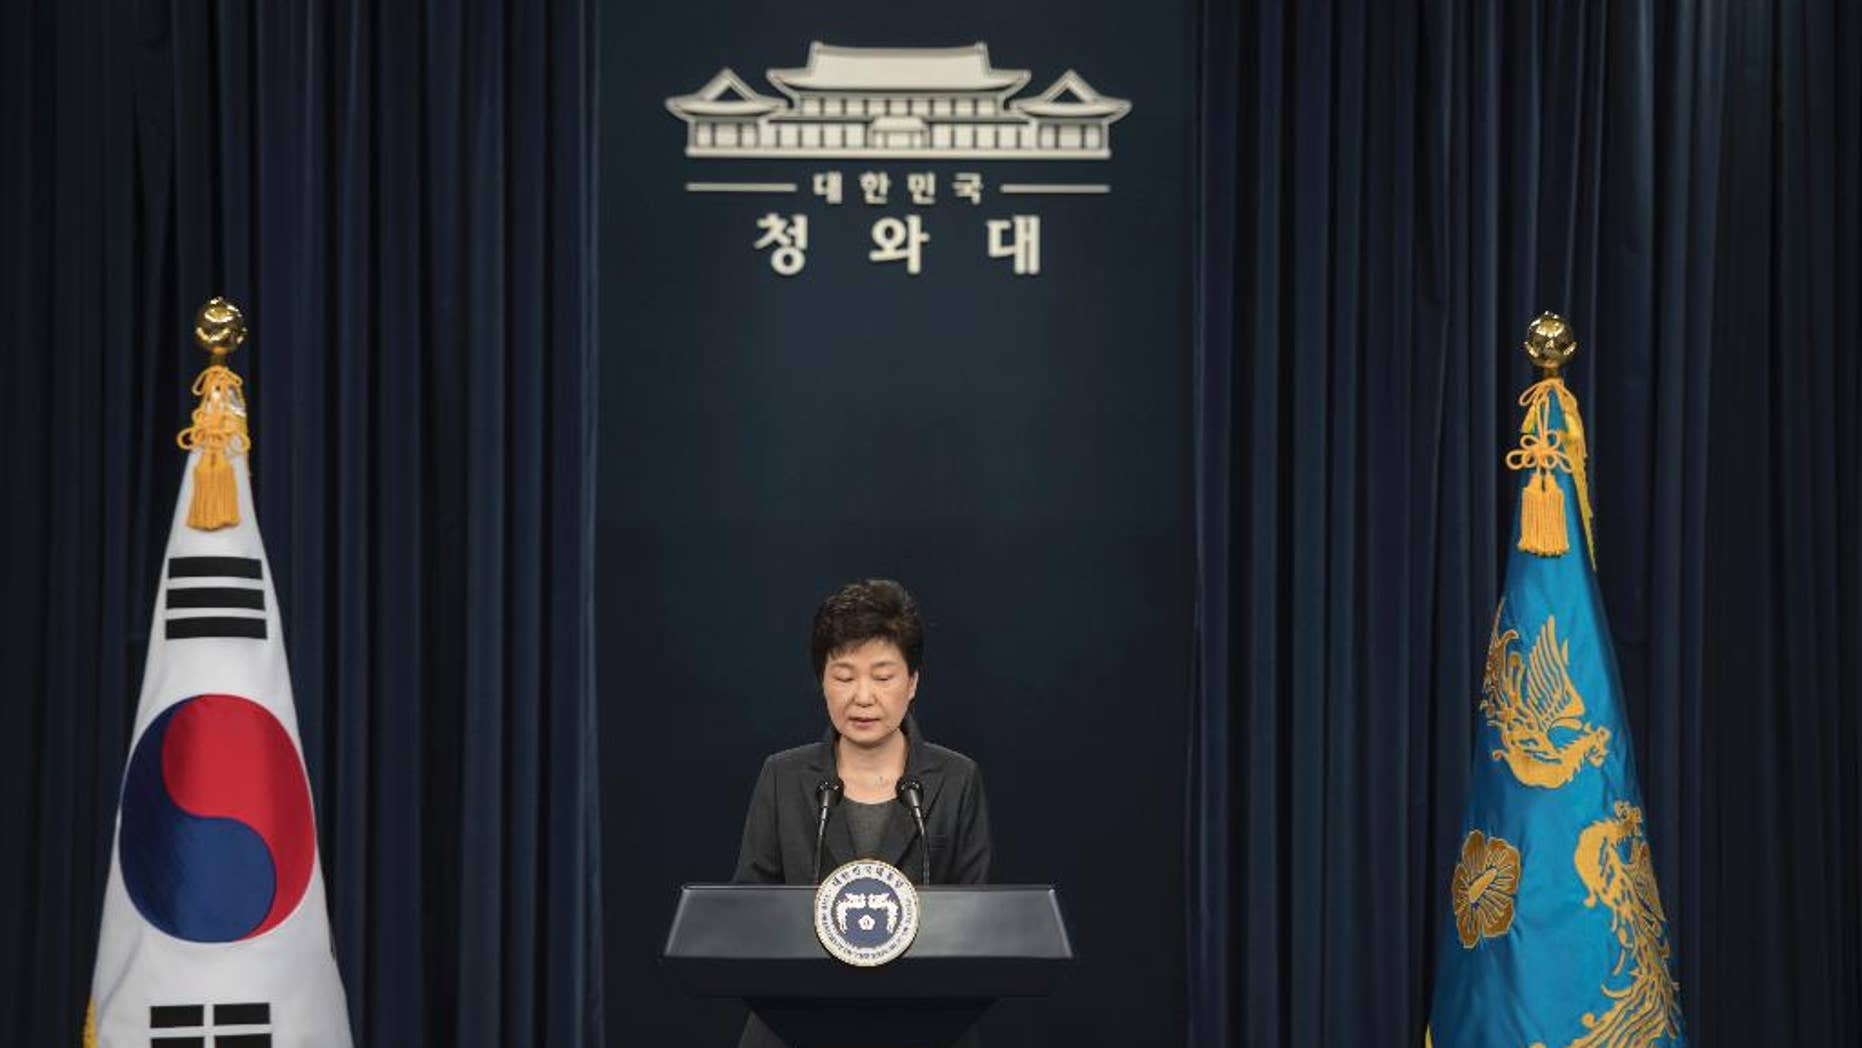 """South Korean President Park Geun-hye addresses the nation at the presidential Blue House in Seoul Friday, Nov. 4, 2016. Park took sole blame Friday for a """"heartbreaking"""" scandal that threatens her government and vowed she will accept a direct investigation into her actions amid rising suspicion that she allowed a mysterious confidante to manipulate power from the shadows. (Ed Jones/Pool Photo via AP)"""